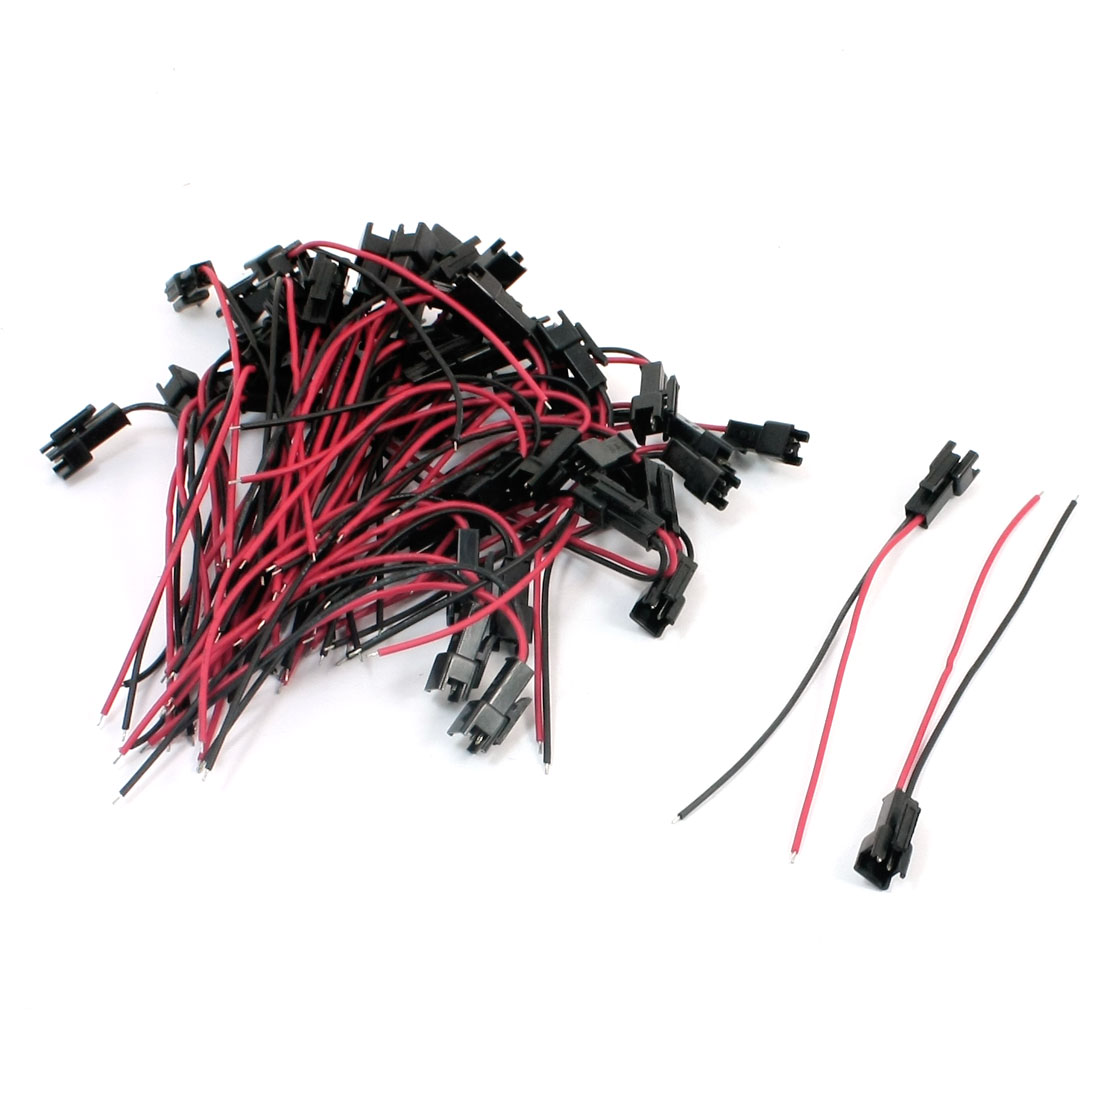 50Pcs JST 2.54mm SM 2Pin Single Head 24AWG 9cm Battery Connector Wire